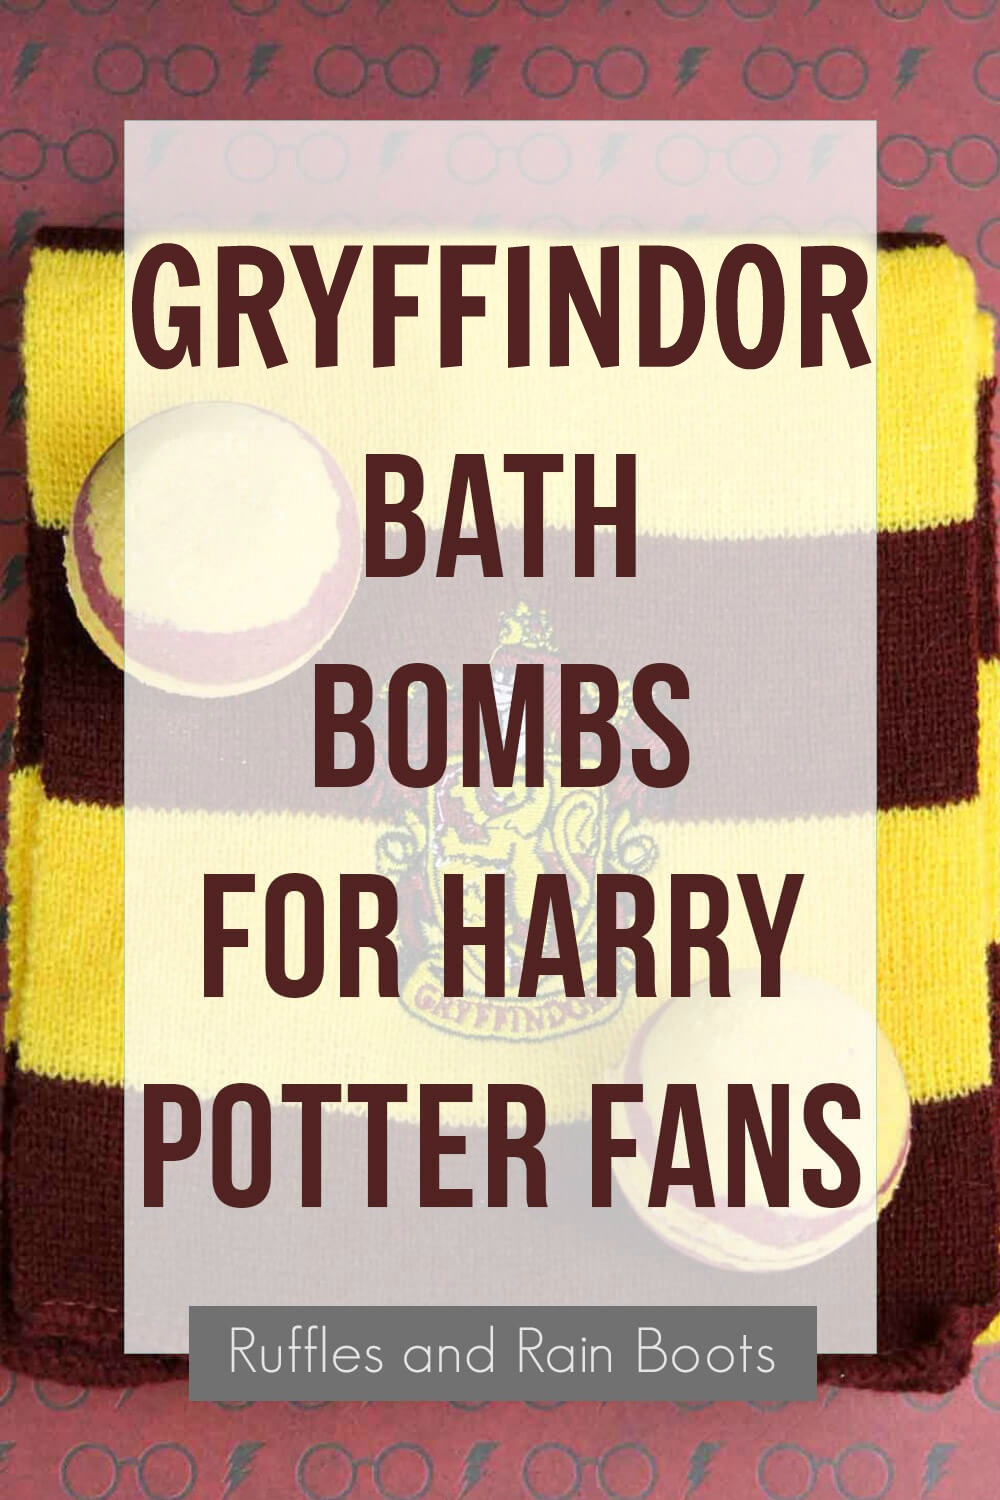 shower fizzies on red and yellow scarf with text overlay with text which reads Gryffindor bath bombs for harry potter fans